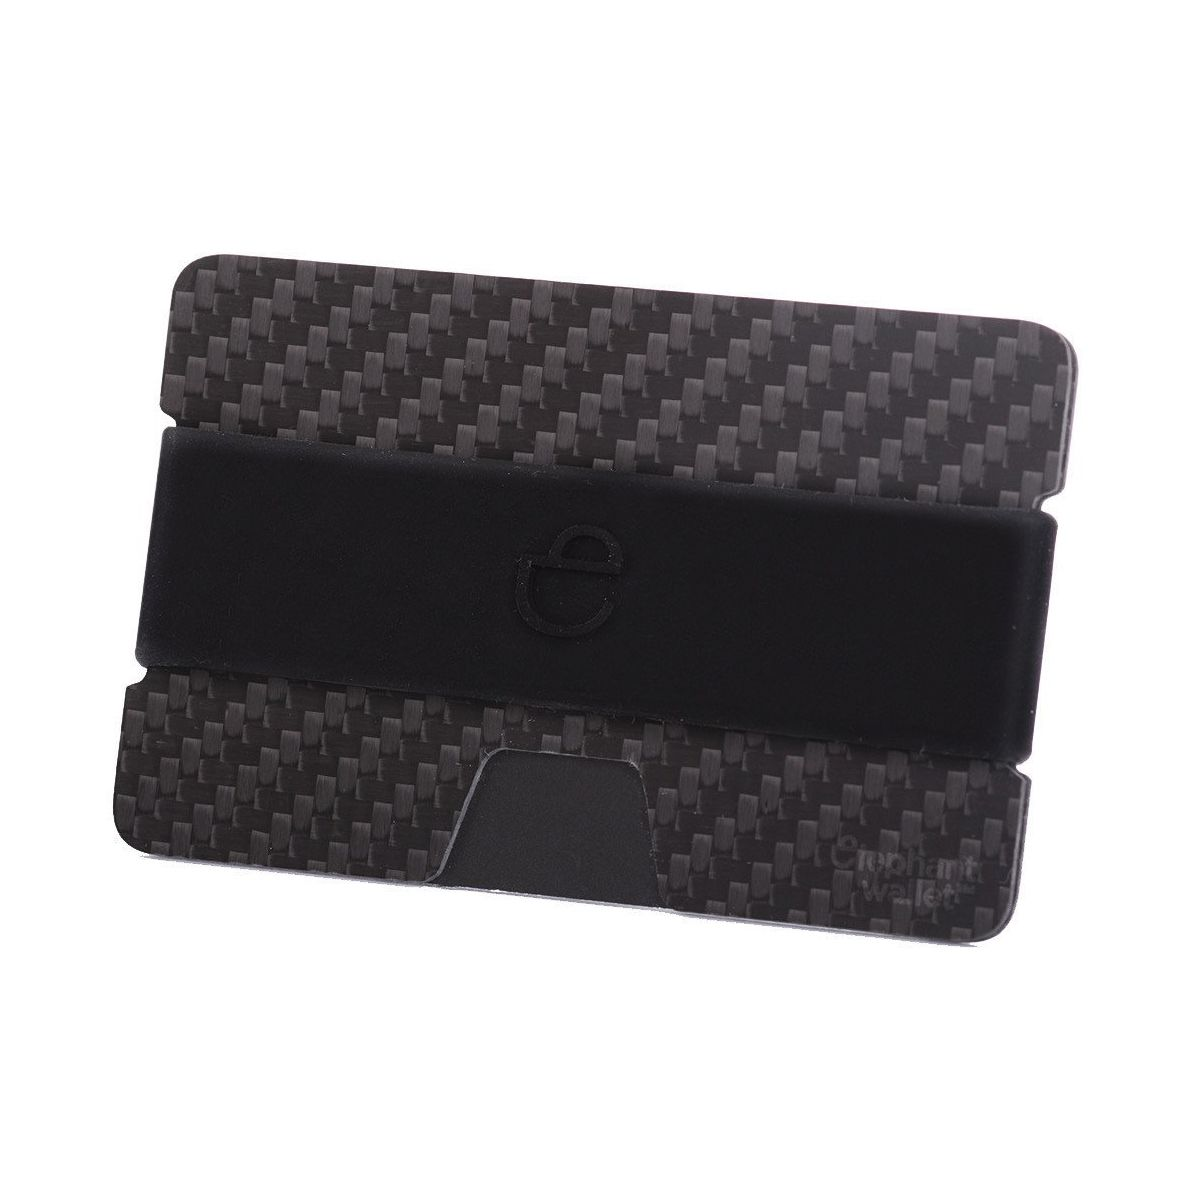 Minimalist Carbon Fiber Wallet with Silicone Strap - Carbon/Black